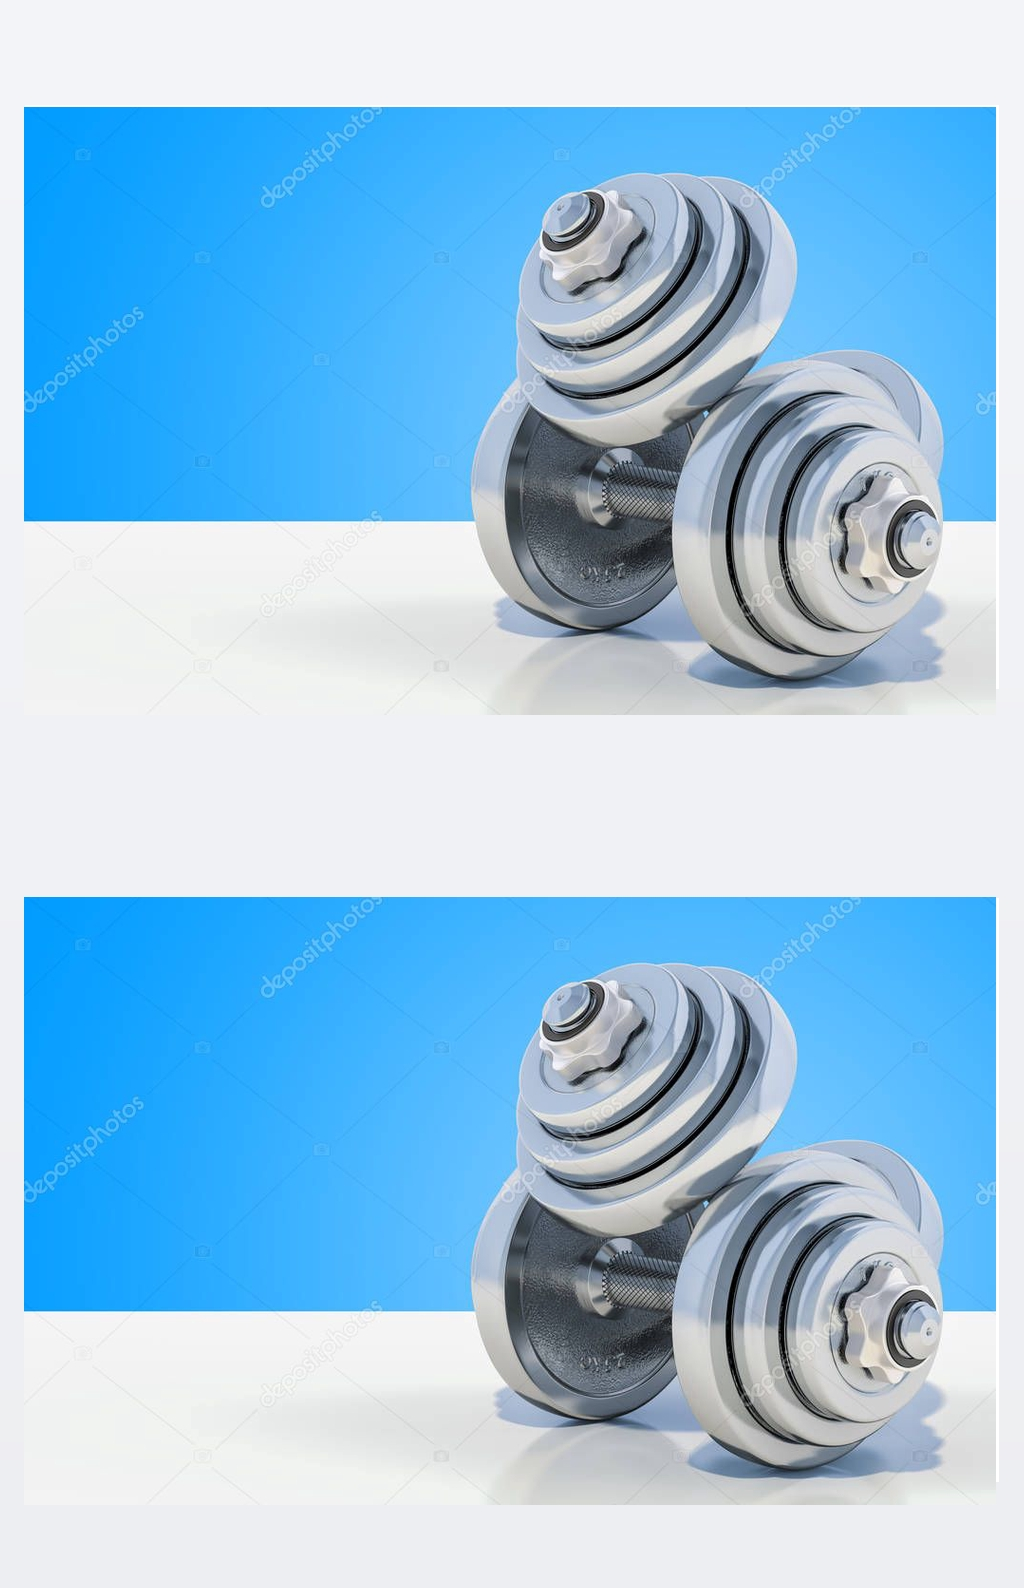 Dumbbells on the desk, 3D rendering